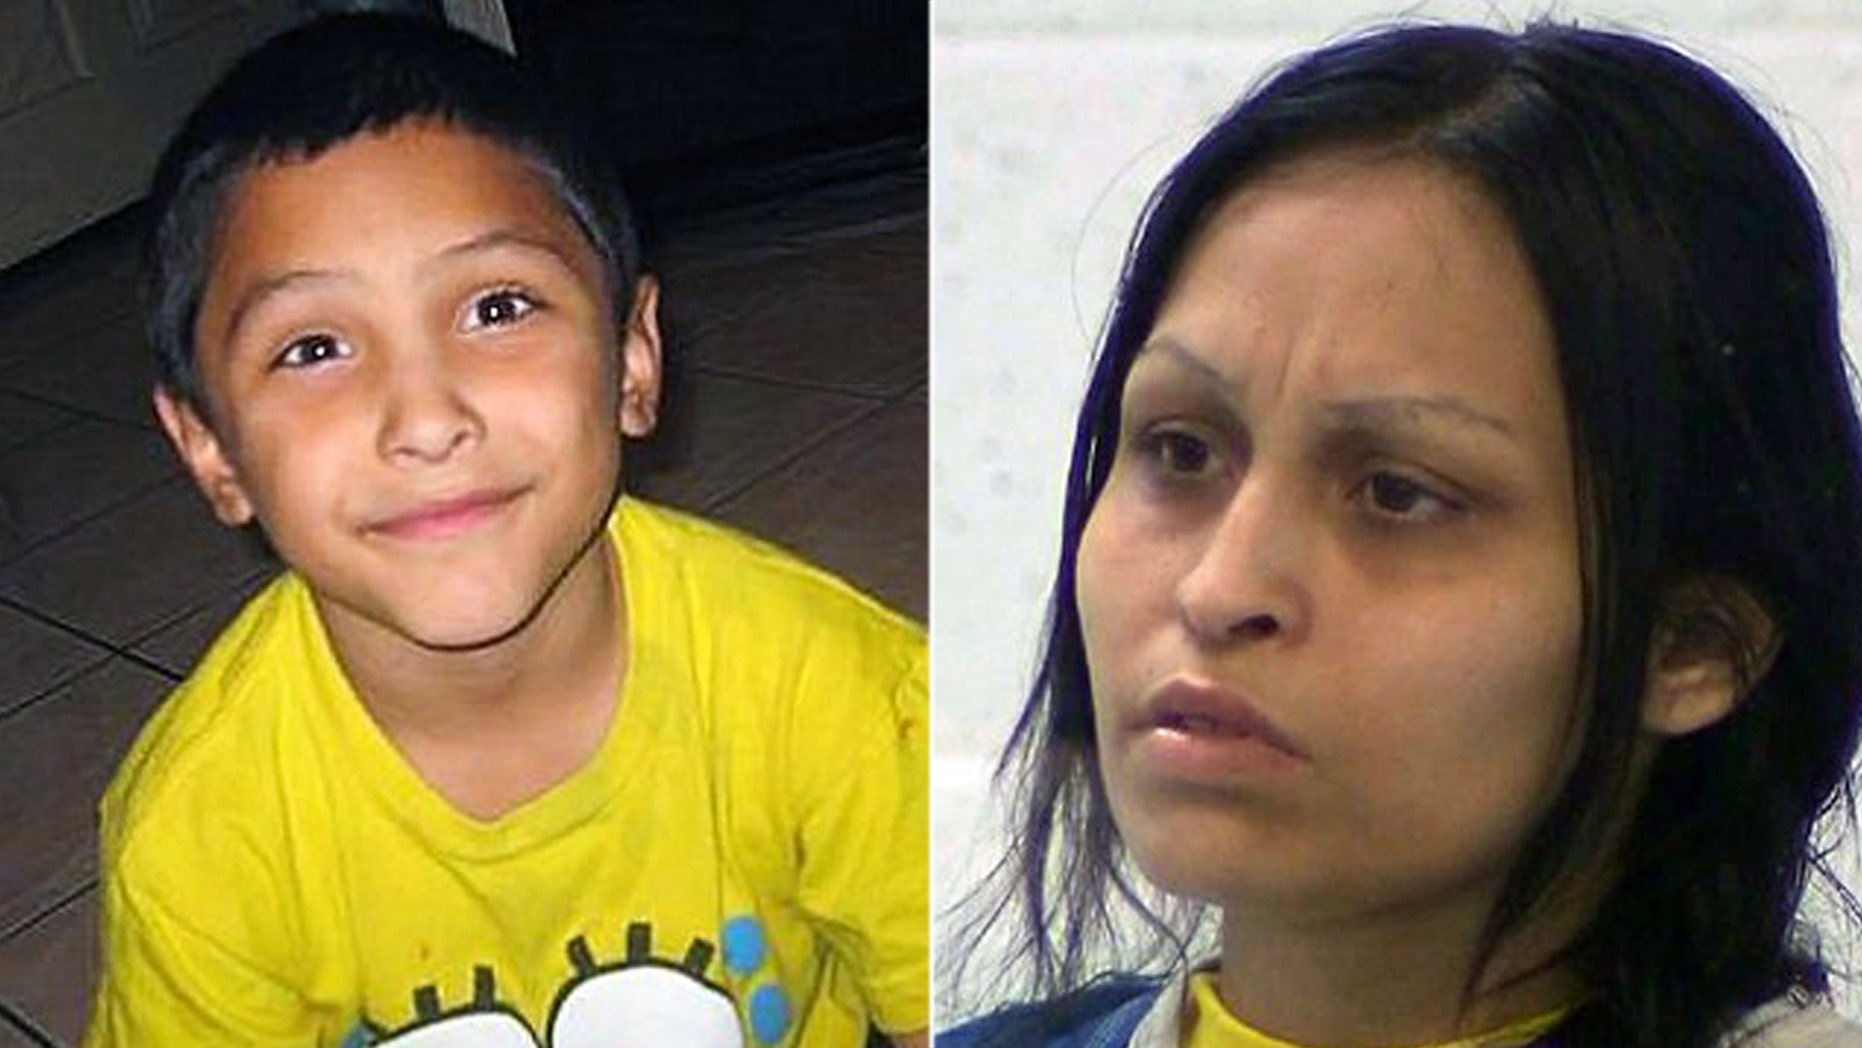 Pearl Fernandez is expected to be sentenced to life in prison without a chance at parole for the 2013 death of Gabriel Fernandez, her 8-year-old son, who was routinely beaten, starved and tortured by her boyfriend until he died in California.